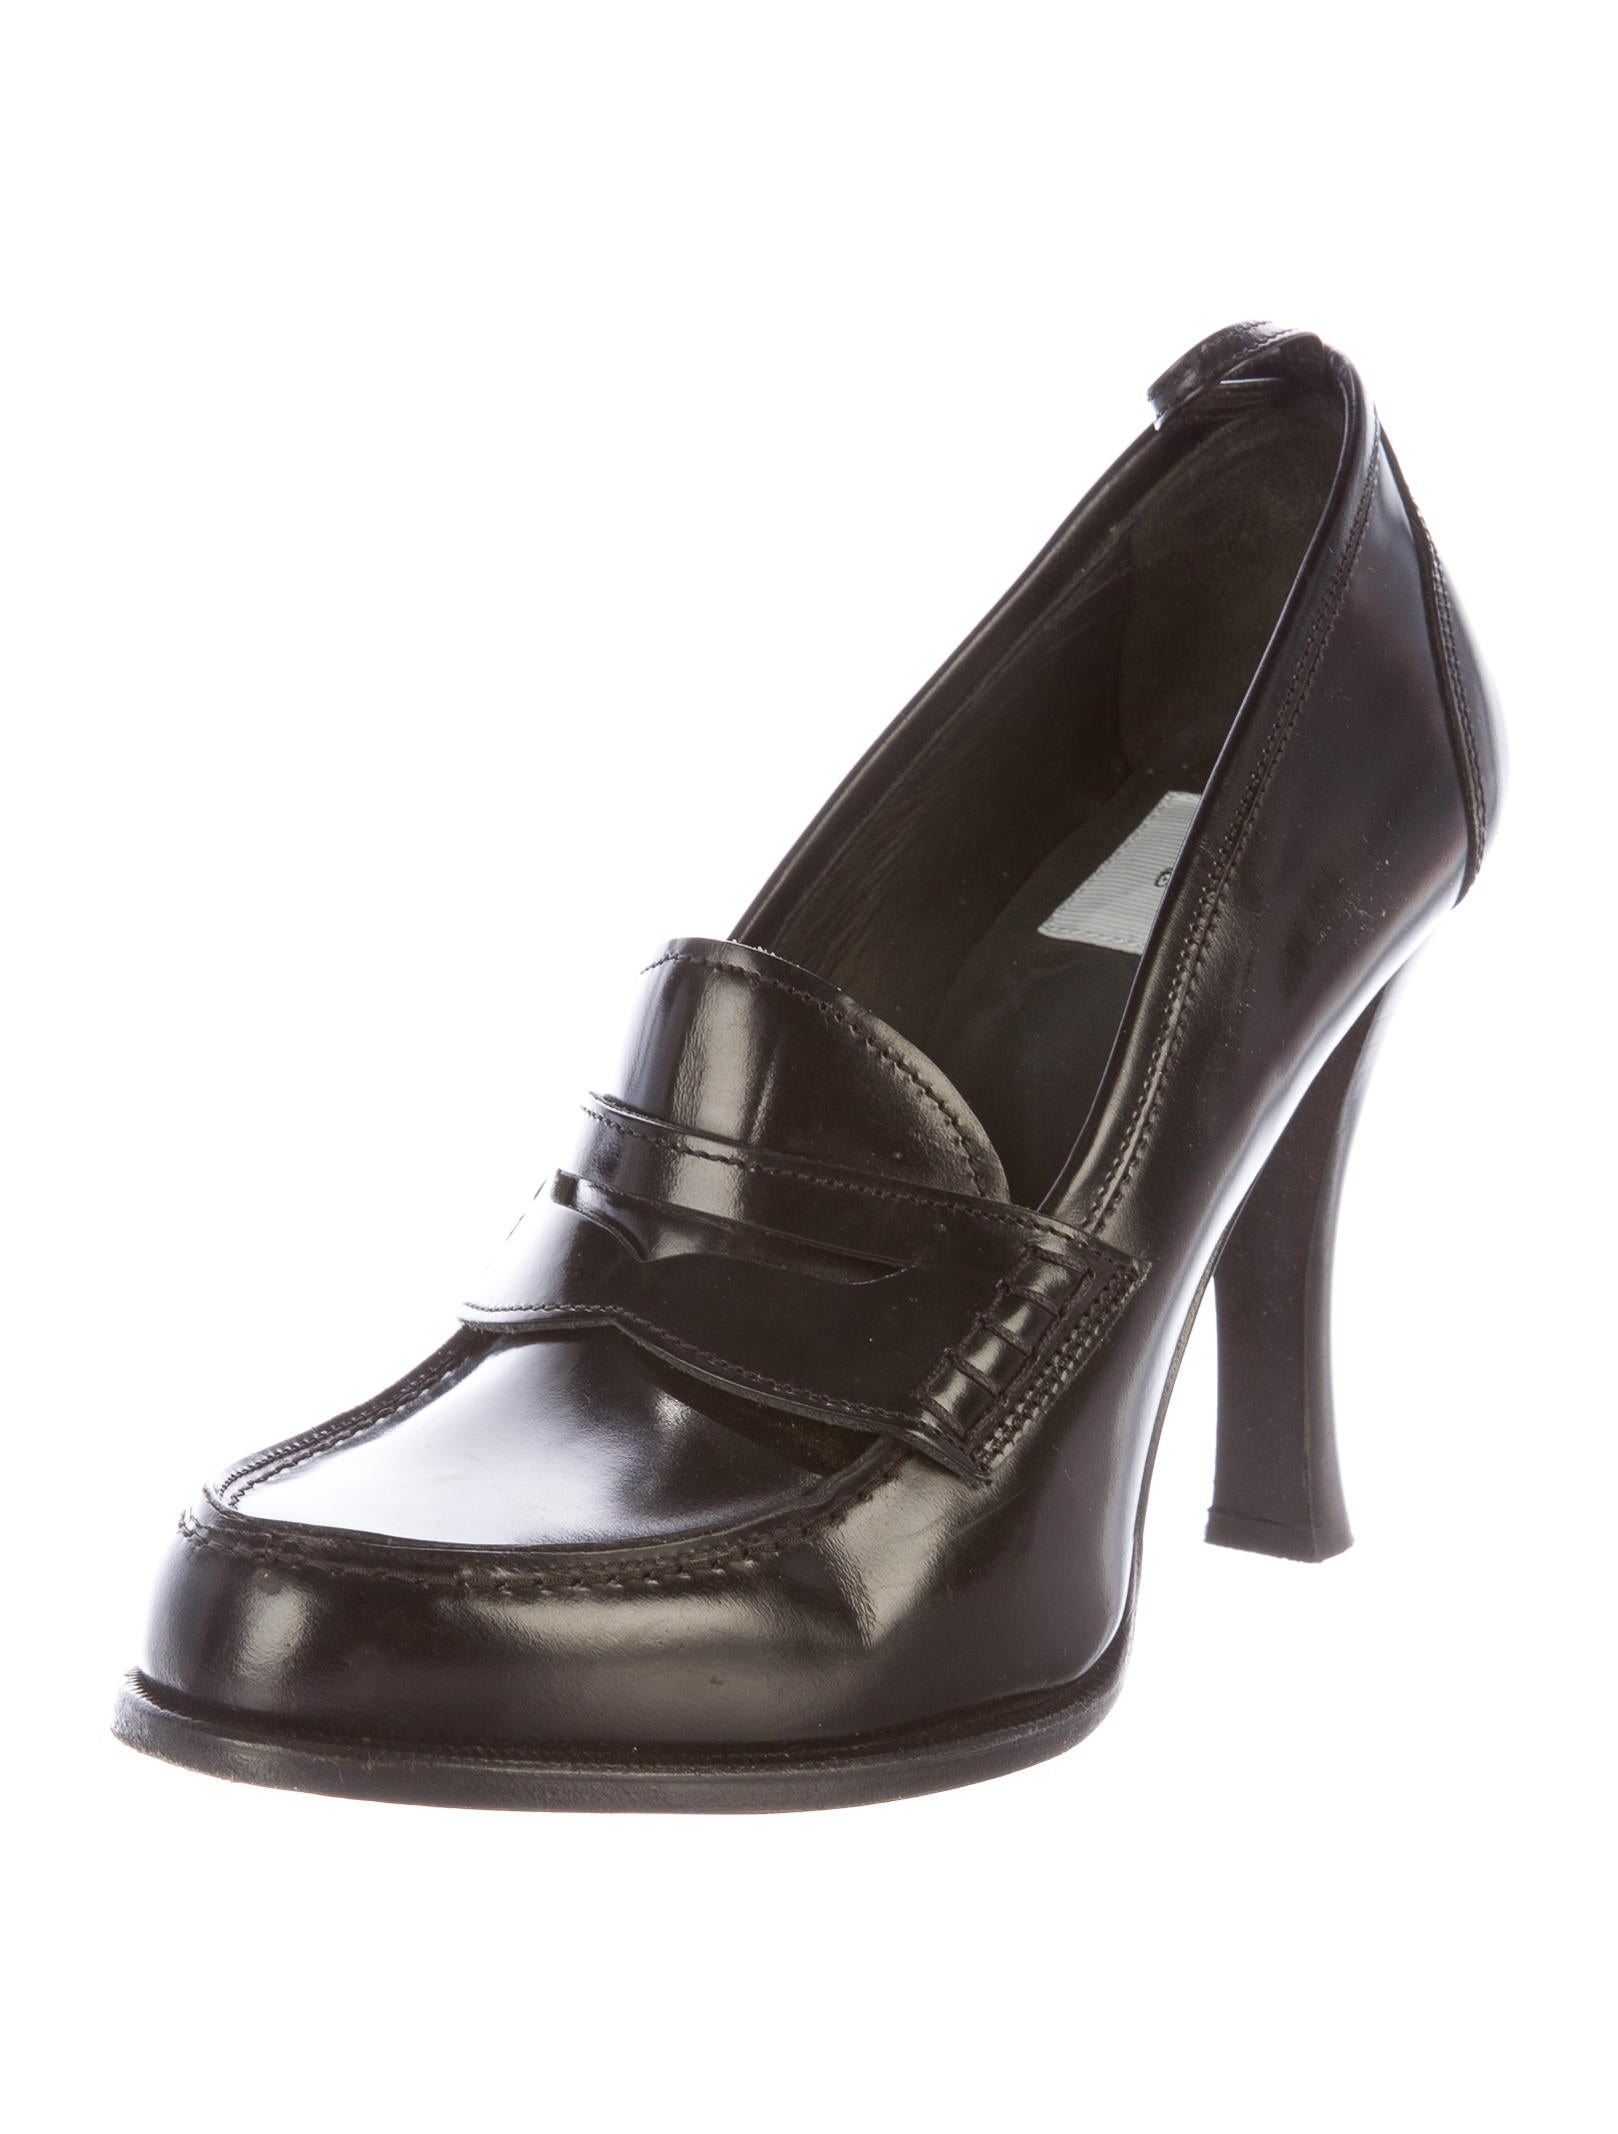 EURO SOFT by SOFFT Women's Black Genuine Leather Loafer Heel Pumps Shoes Sz 7. Condition is Pre-owned. Shipped with USPS Priority Mail.